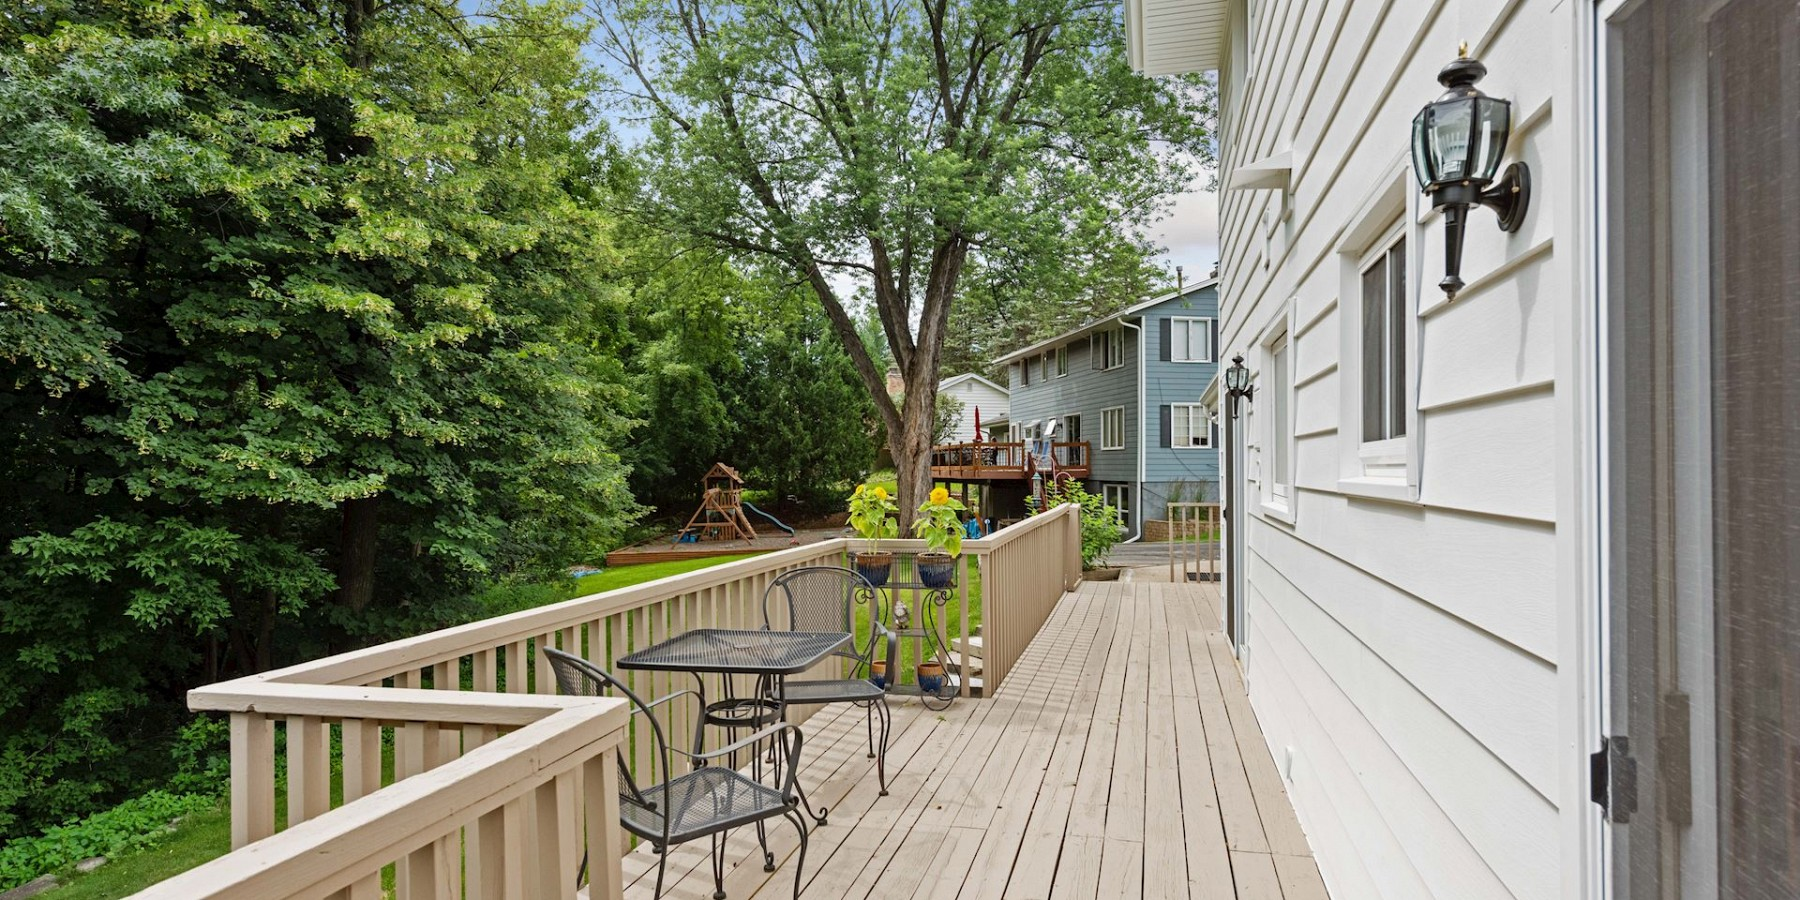 18901 KINGSWOOD TERRACE, MINNETONKA, MN 55345